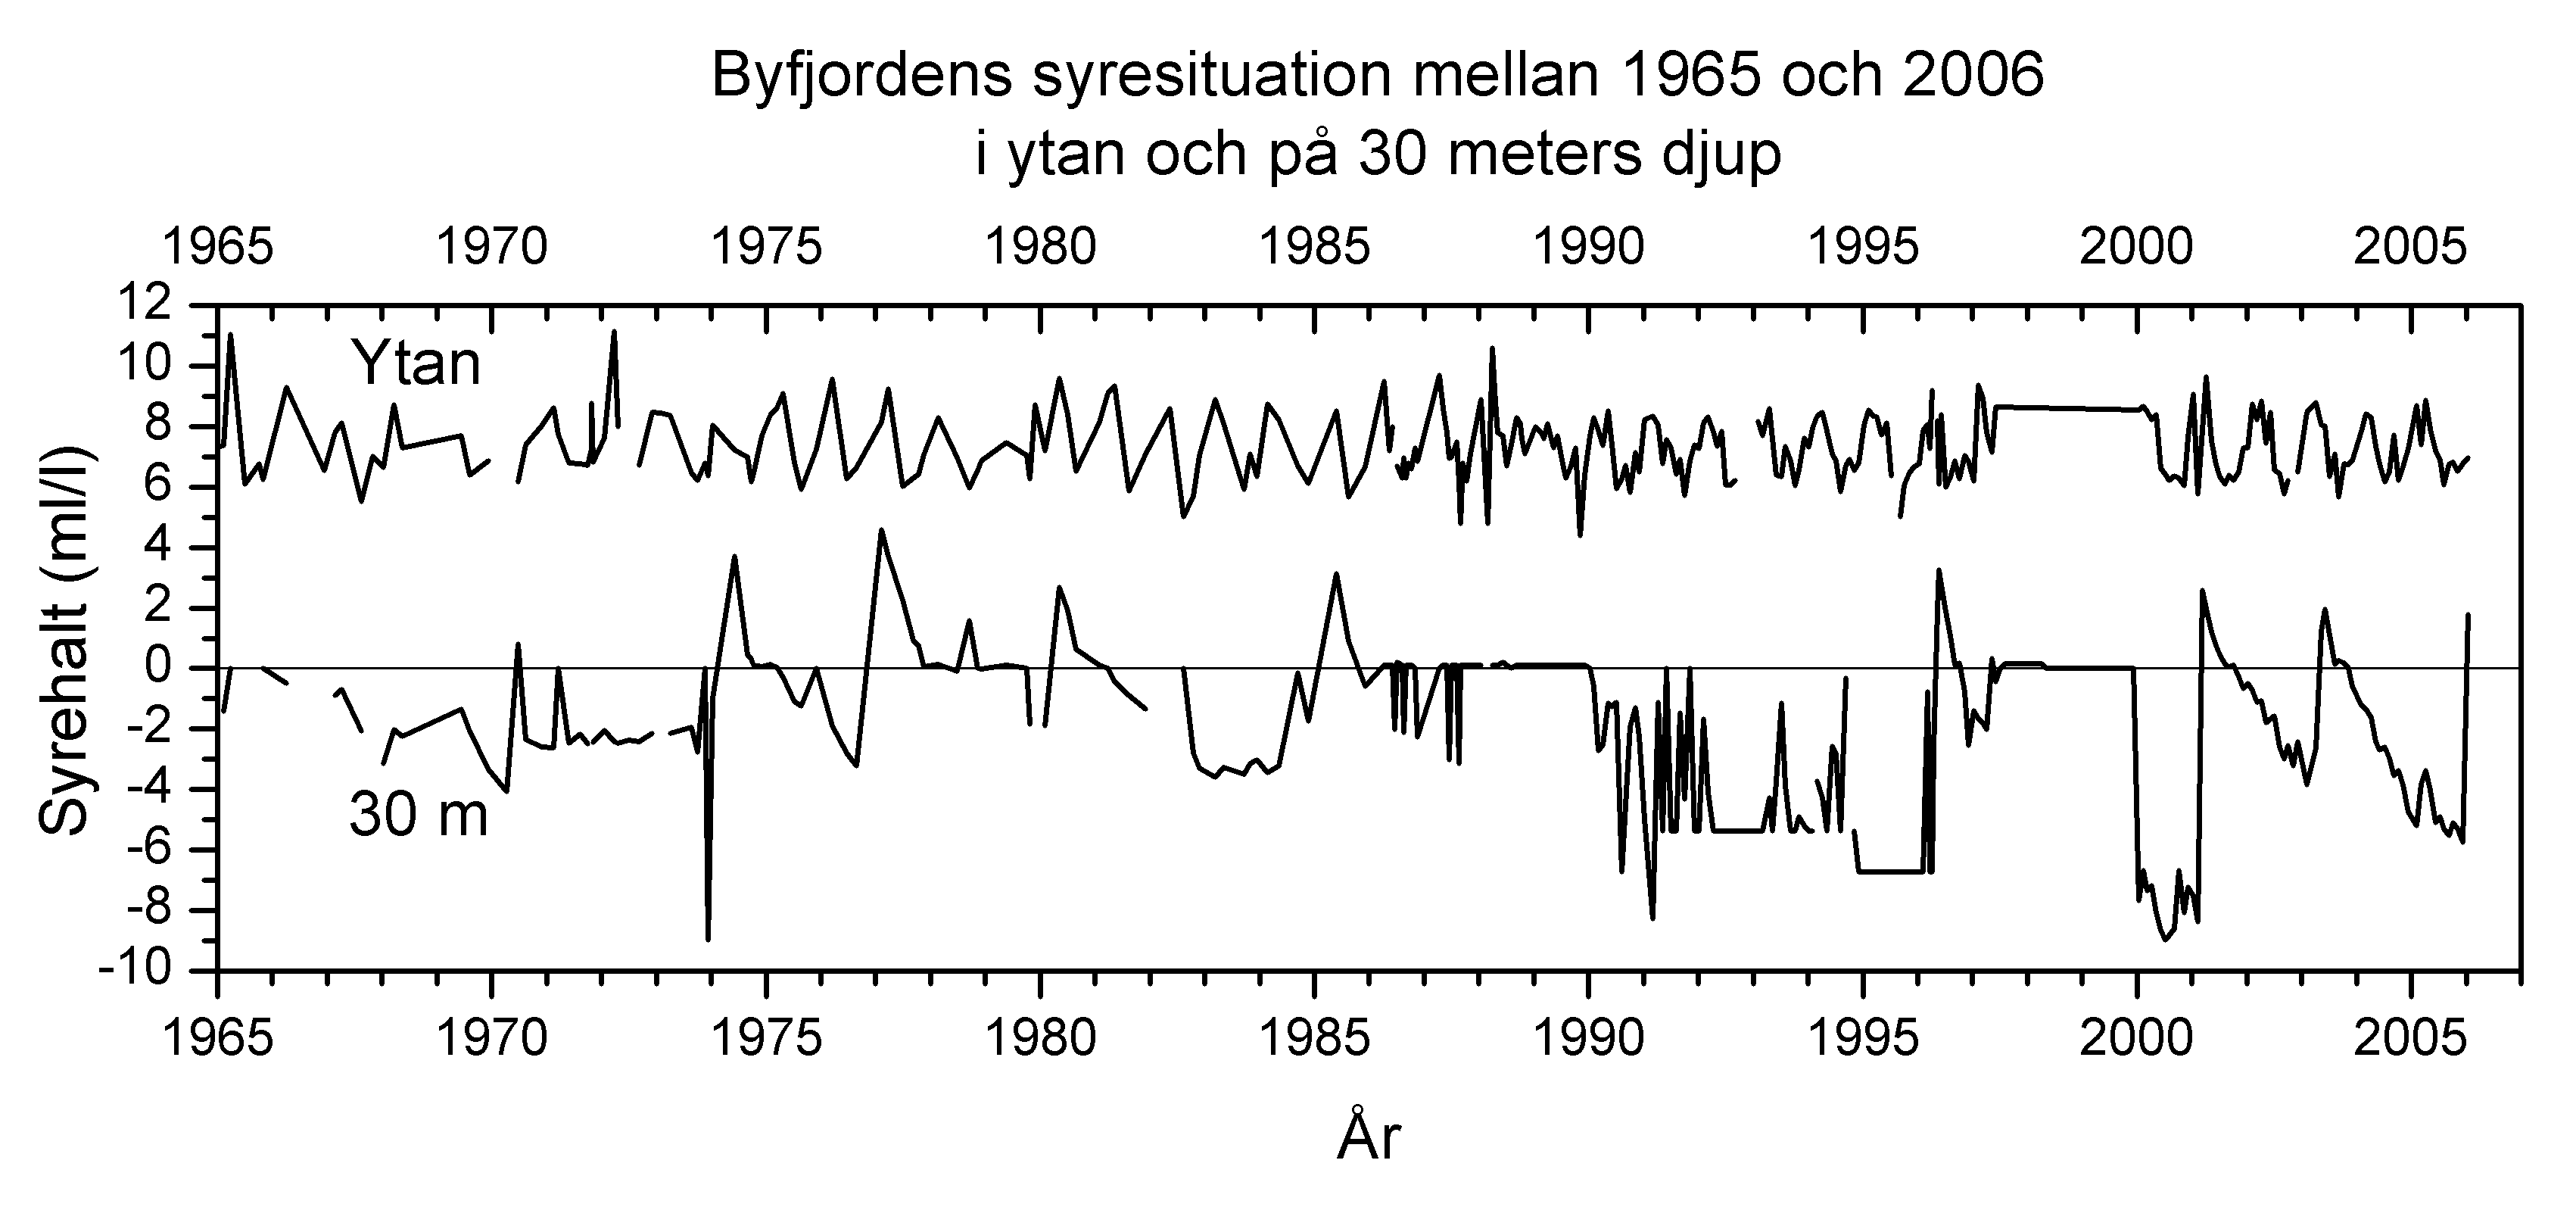 Oxygen concentrations in the Byfjord measured at the surface and bottom (30 m). The surface water is always well oxygenated while the deep water is almost chronically in an anoxic state (i.e. total lack of oxygen). Please note that the oxygen concentrations is given as millilitres O2 per litre and that negative values represents the presence of hydrogen sulfide.